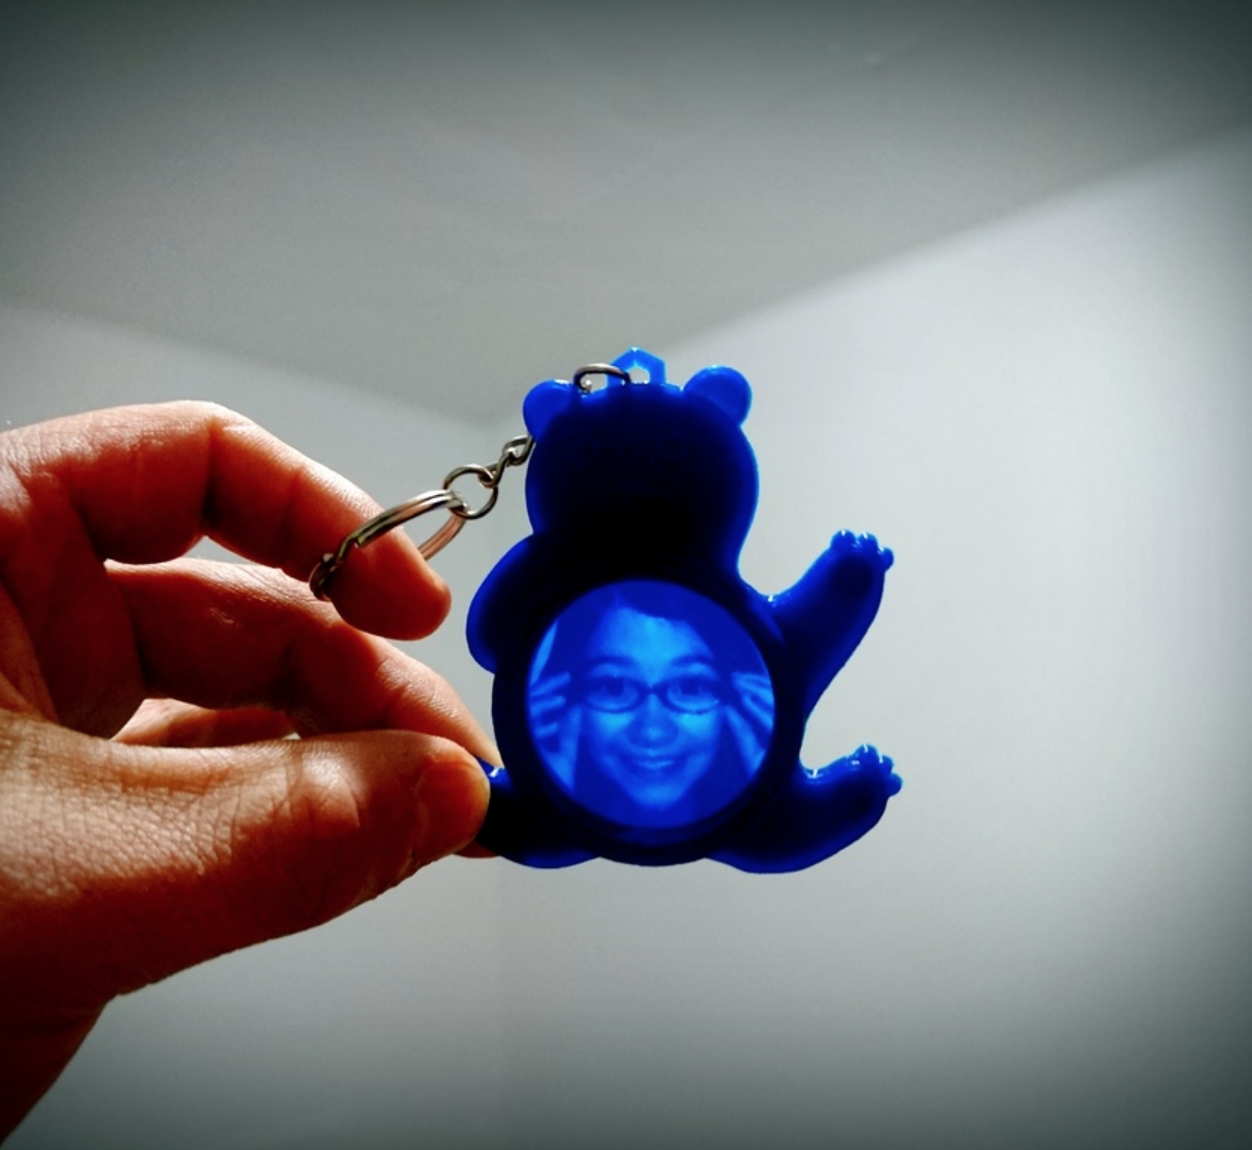 Capture d'écran 2018-02-01 à 10.15.37.png Download free STL file Customizable teddy bear key ring tutorial • Object to 3D print, 3dlito